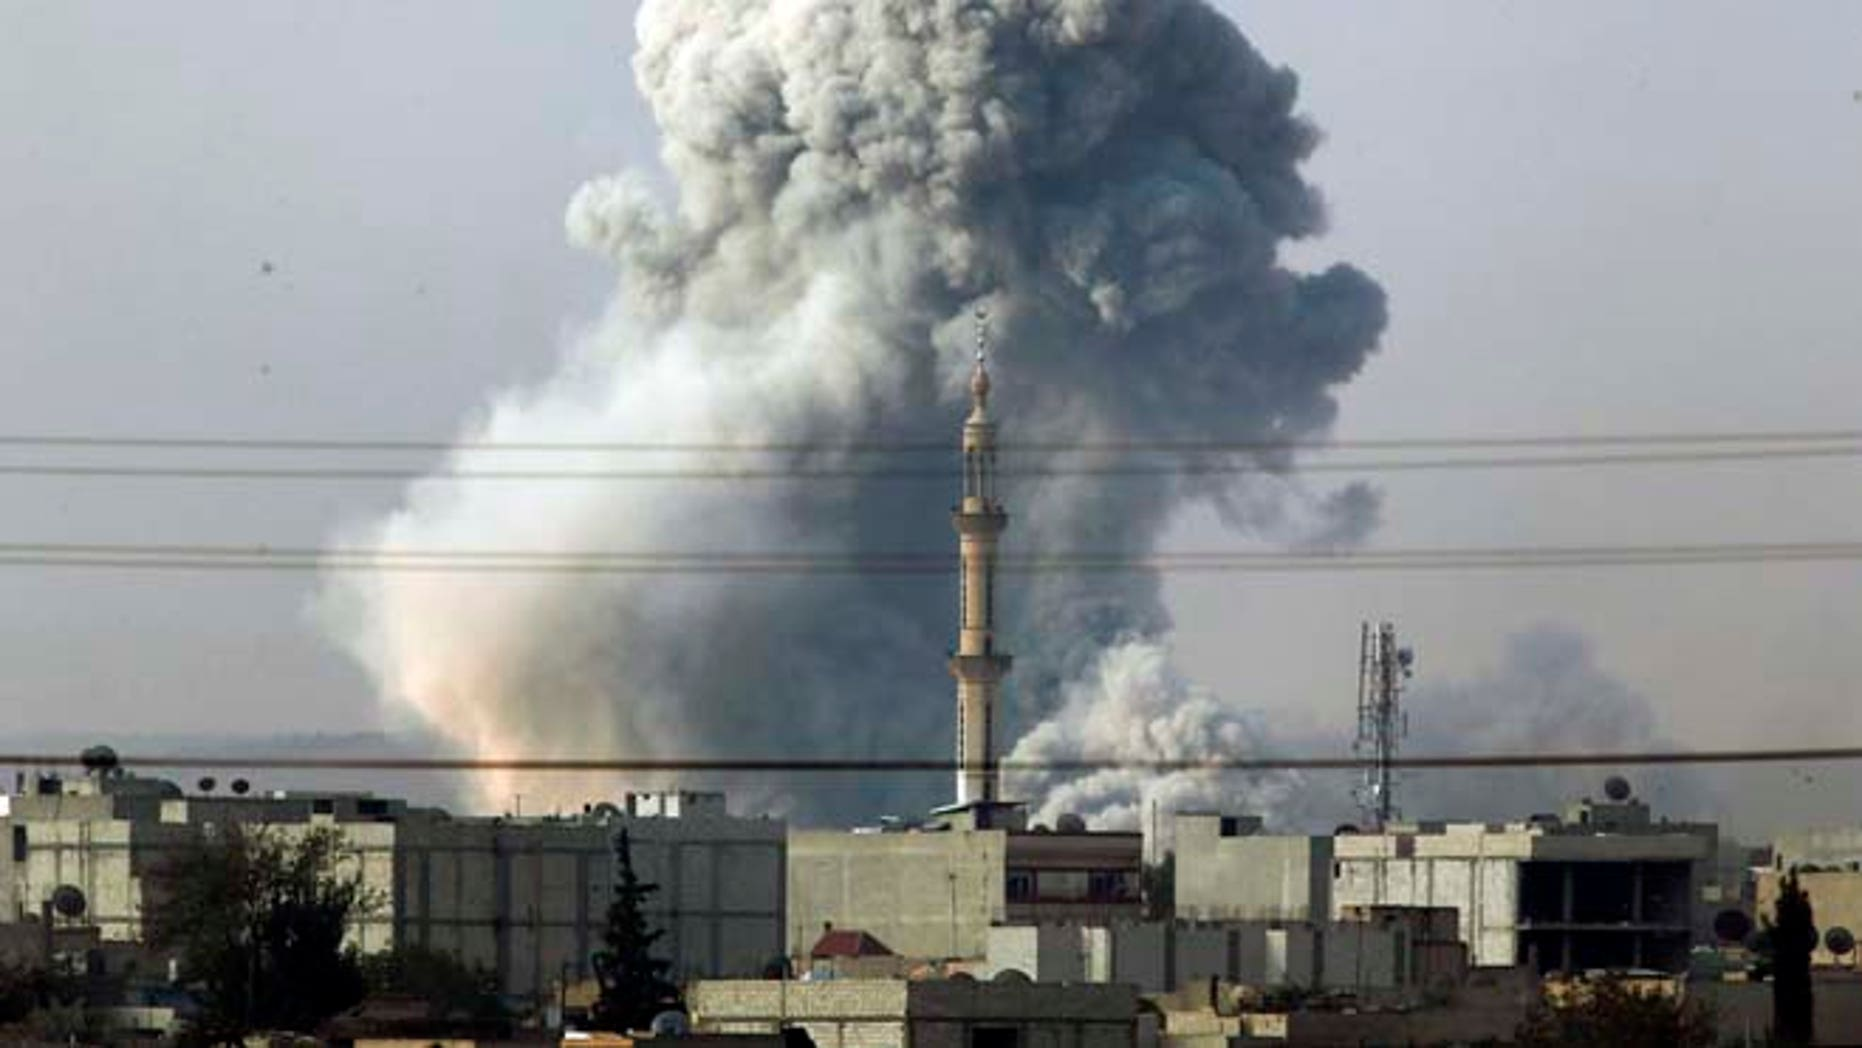 Oct. 14, 2014: Smoke rises following an airstrike by the U.S.-led coalition in Kobani, Syria as fighting continues between Syrian Kurds and the militants of Islamic State group, as seen from Mursitpinar, on the outskirts of Suruc, at the Turkey-Syria border. Kobani, also known as Ayn Arab, and its surrounding areas, has been under assault by extremists of the Islamic State group since mid-September and is being defended by Kurdish fighters.